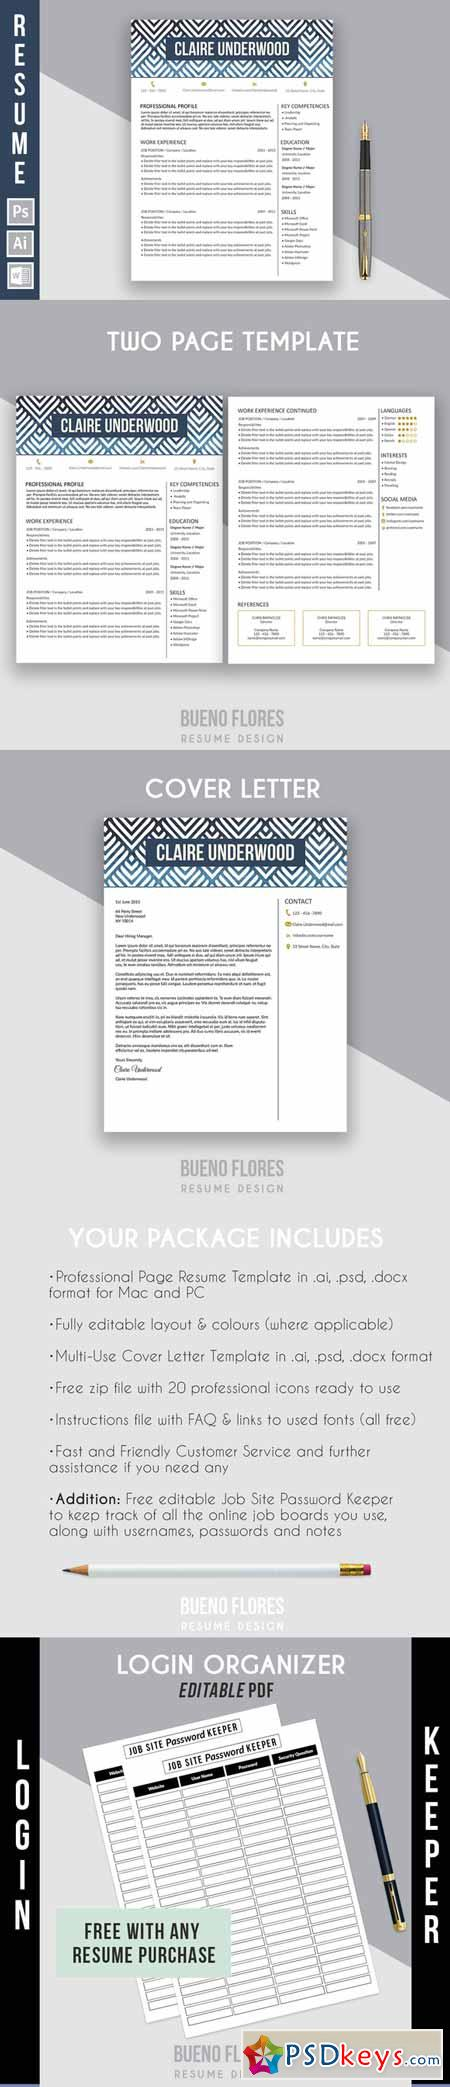 resume template claire underwood b 582476  u00bb free download